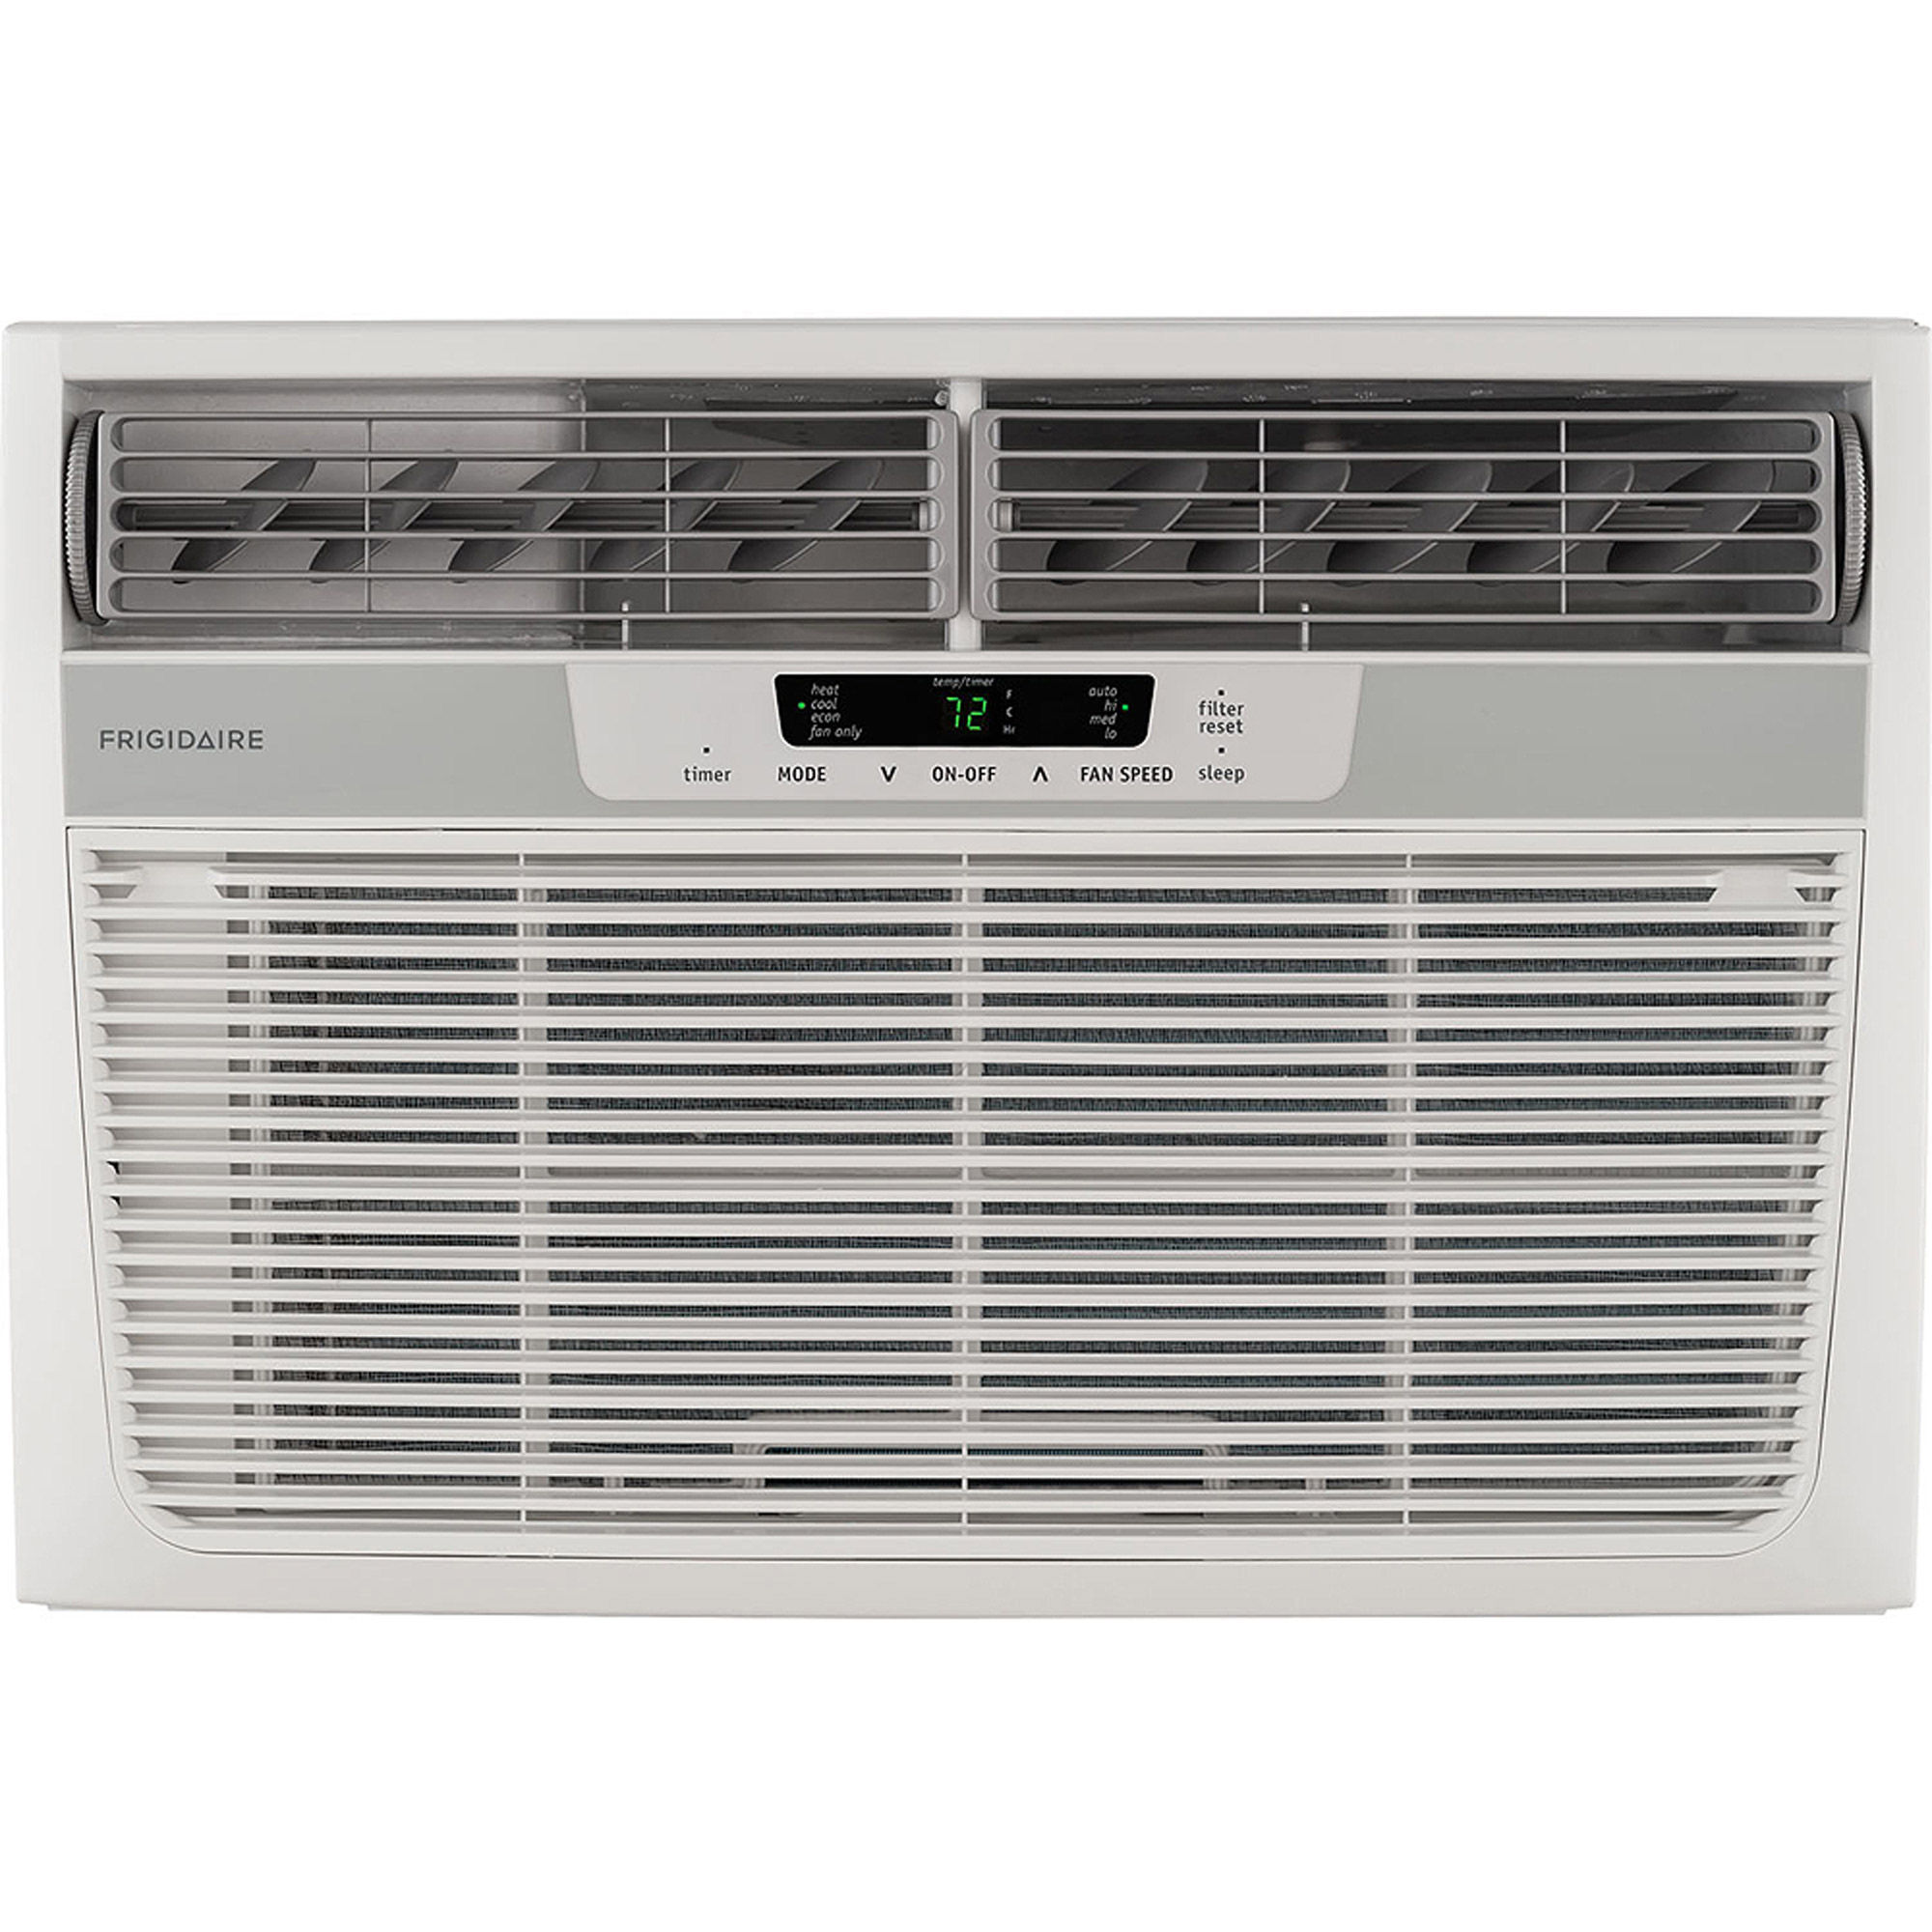 Average cost of new furnace and ac for home - Frigidaire Ffre0833s1 8 000 Btu 115v Window Mounted Mini Compact Air Conditioner With Temperature Price